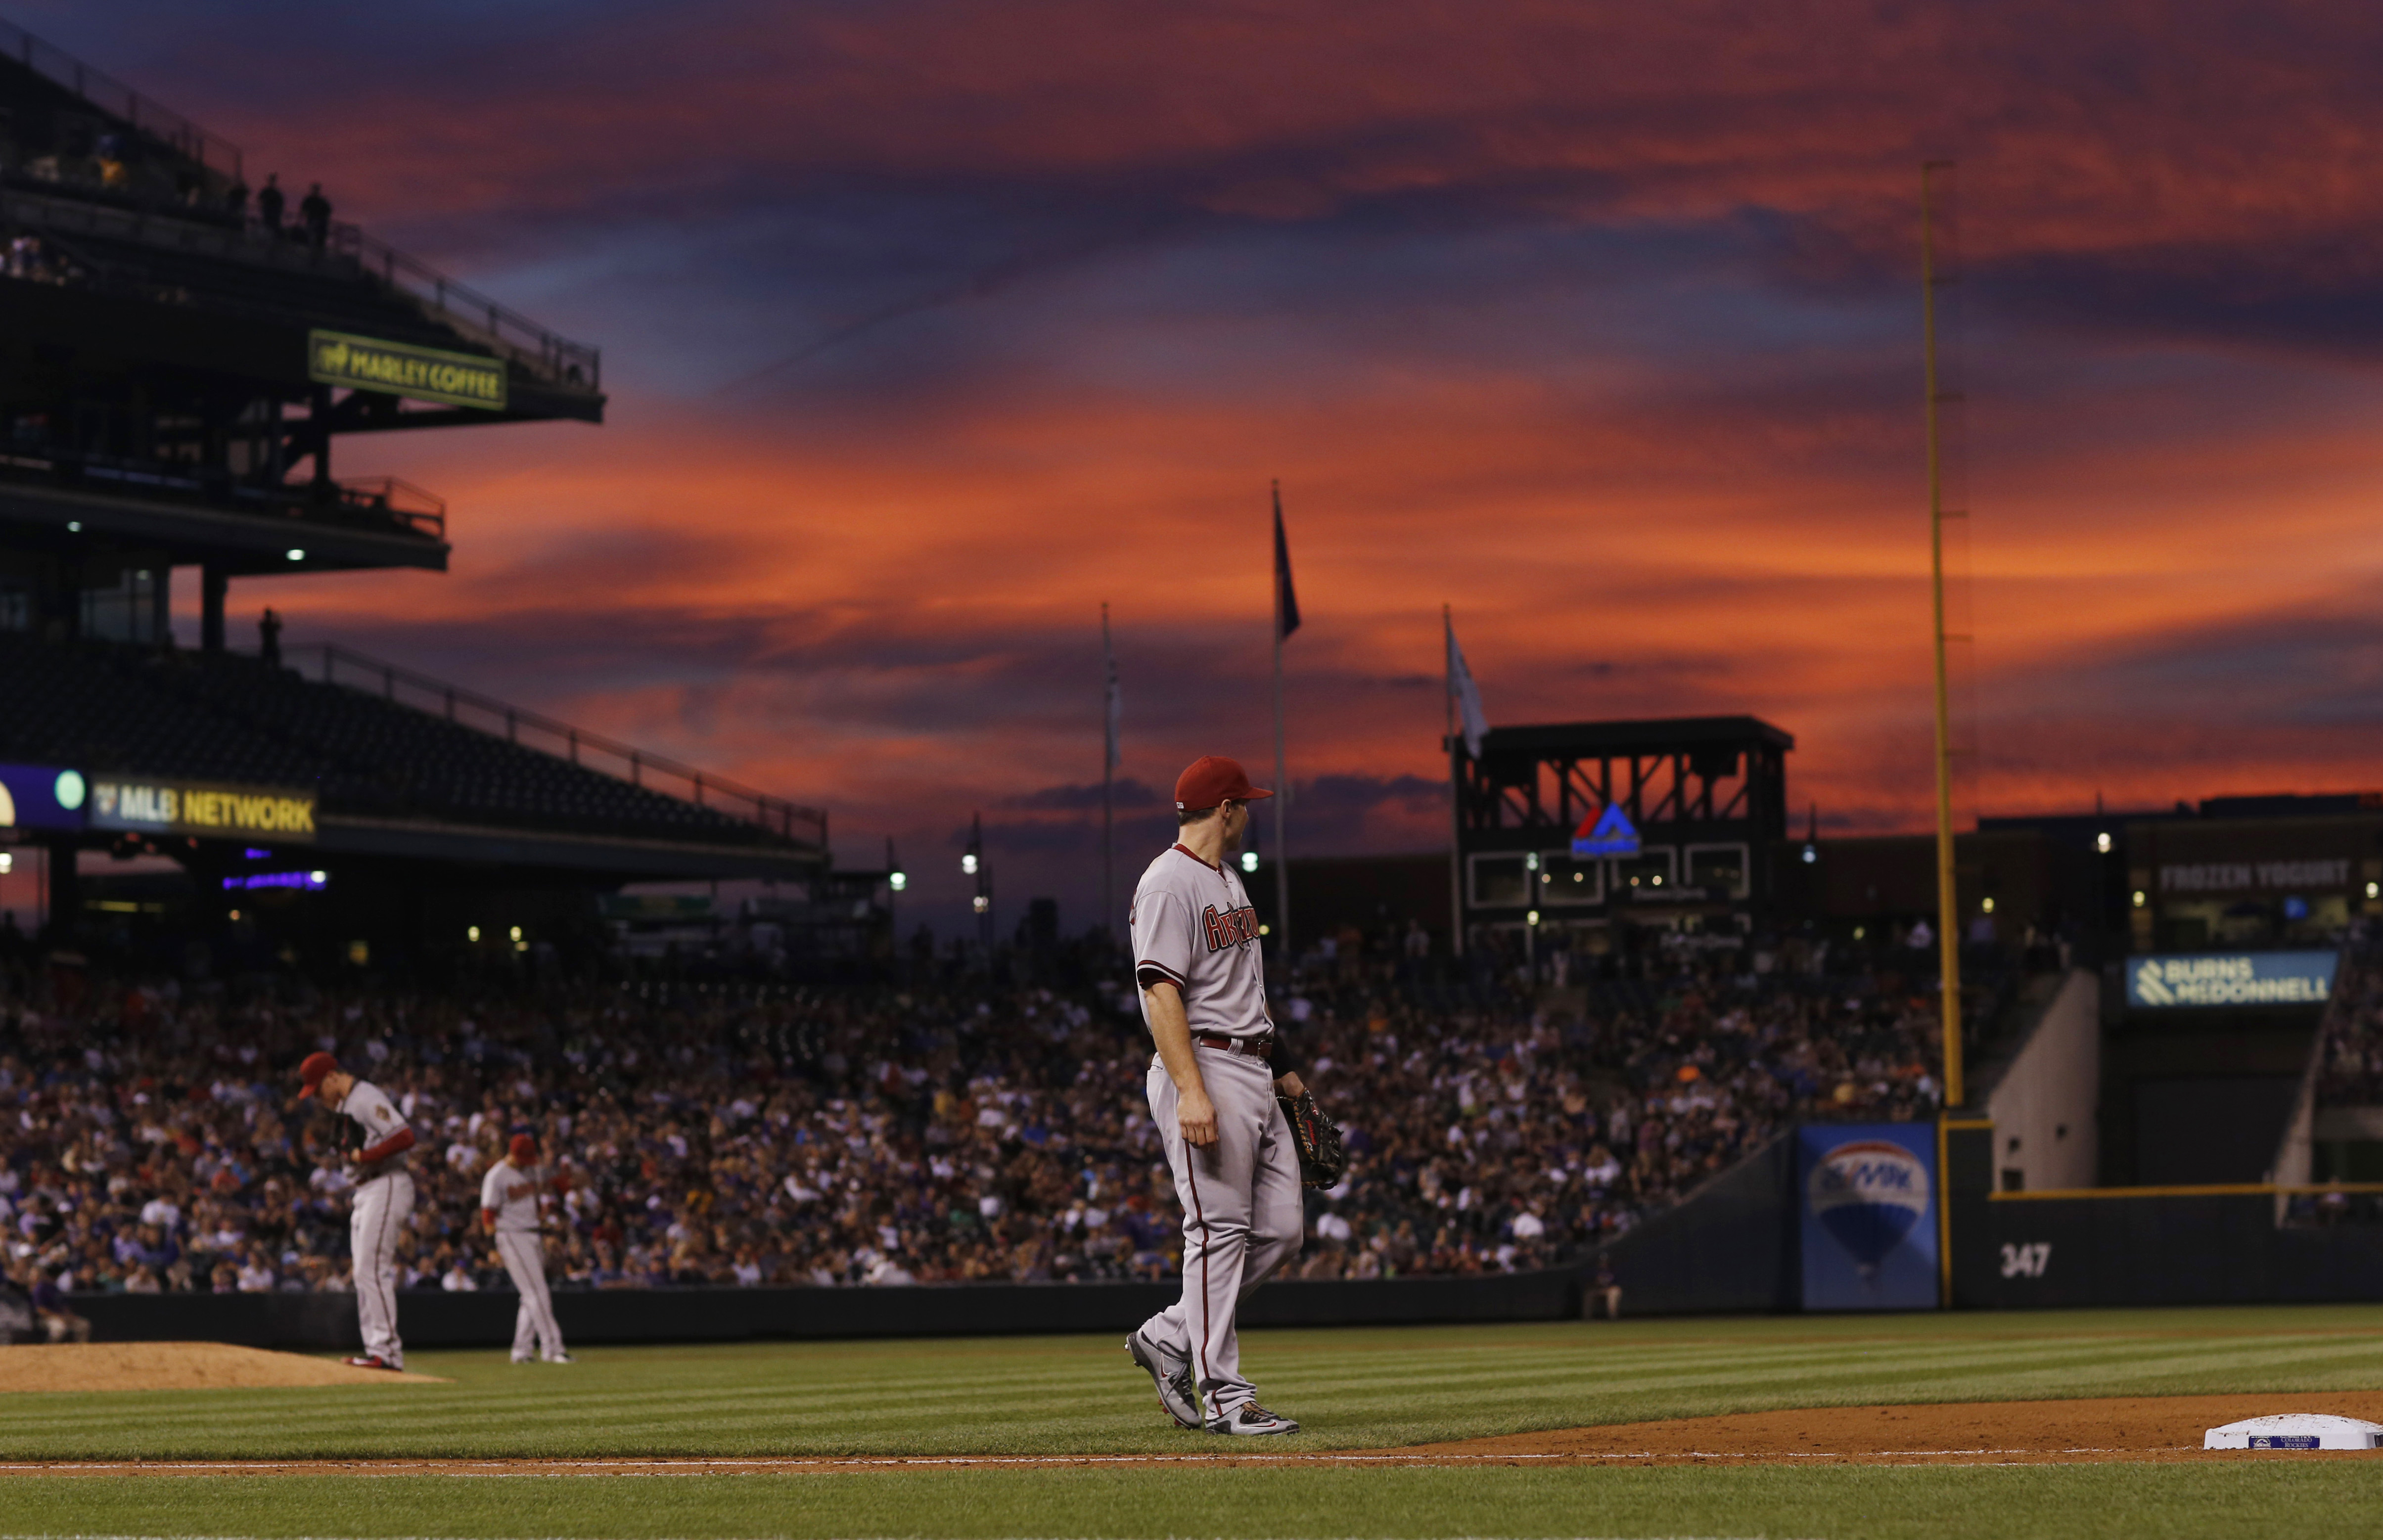 As the setting sun illuminates the sky in the background, Arizona Diamondbacks first baseman Paul Goldschmidt heads back to his position after pursuing a sacrifice bunt put down by Colorado Rockies pitcher Kyle Kendrick during the fifth inning of a baseba